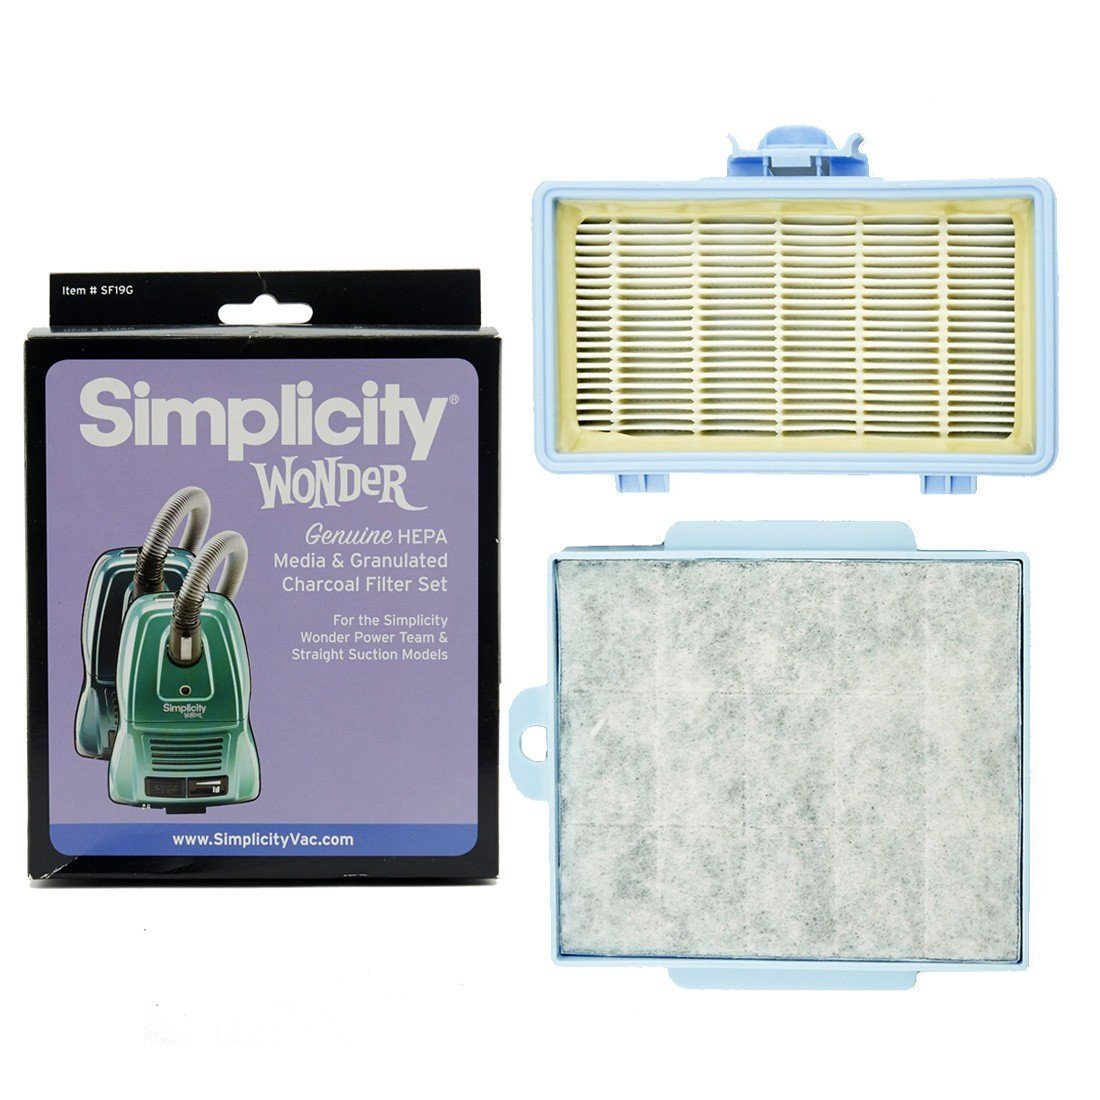 Simplicity Genuine HEPA Media & Granulated Charcoal Filter Set for Wonder Power Team & Straight Suction Models by Simplicity